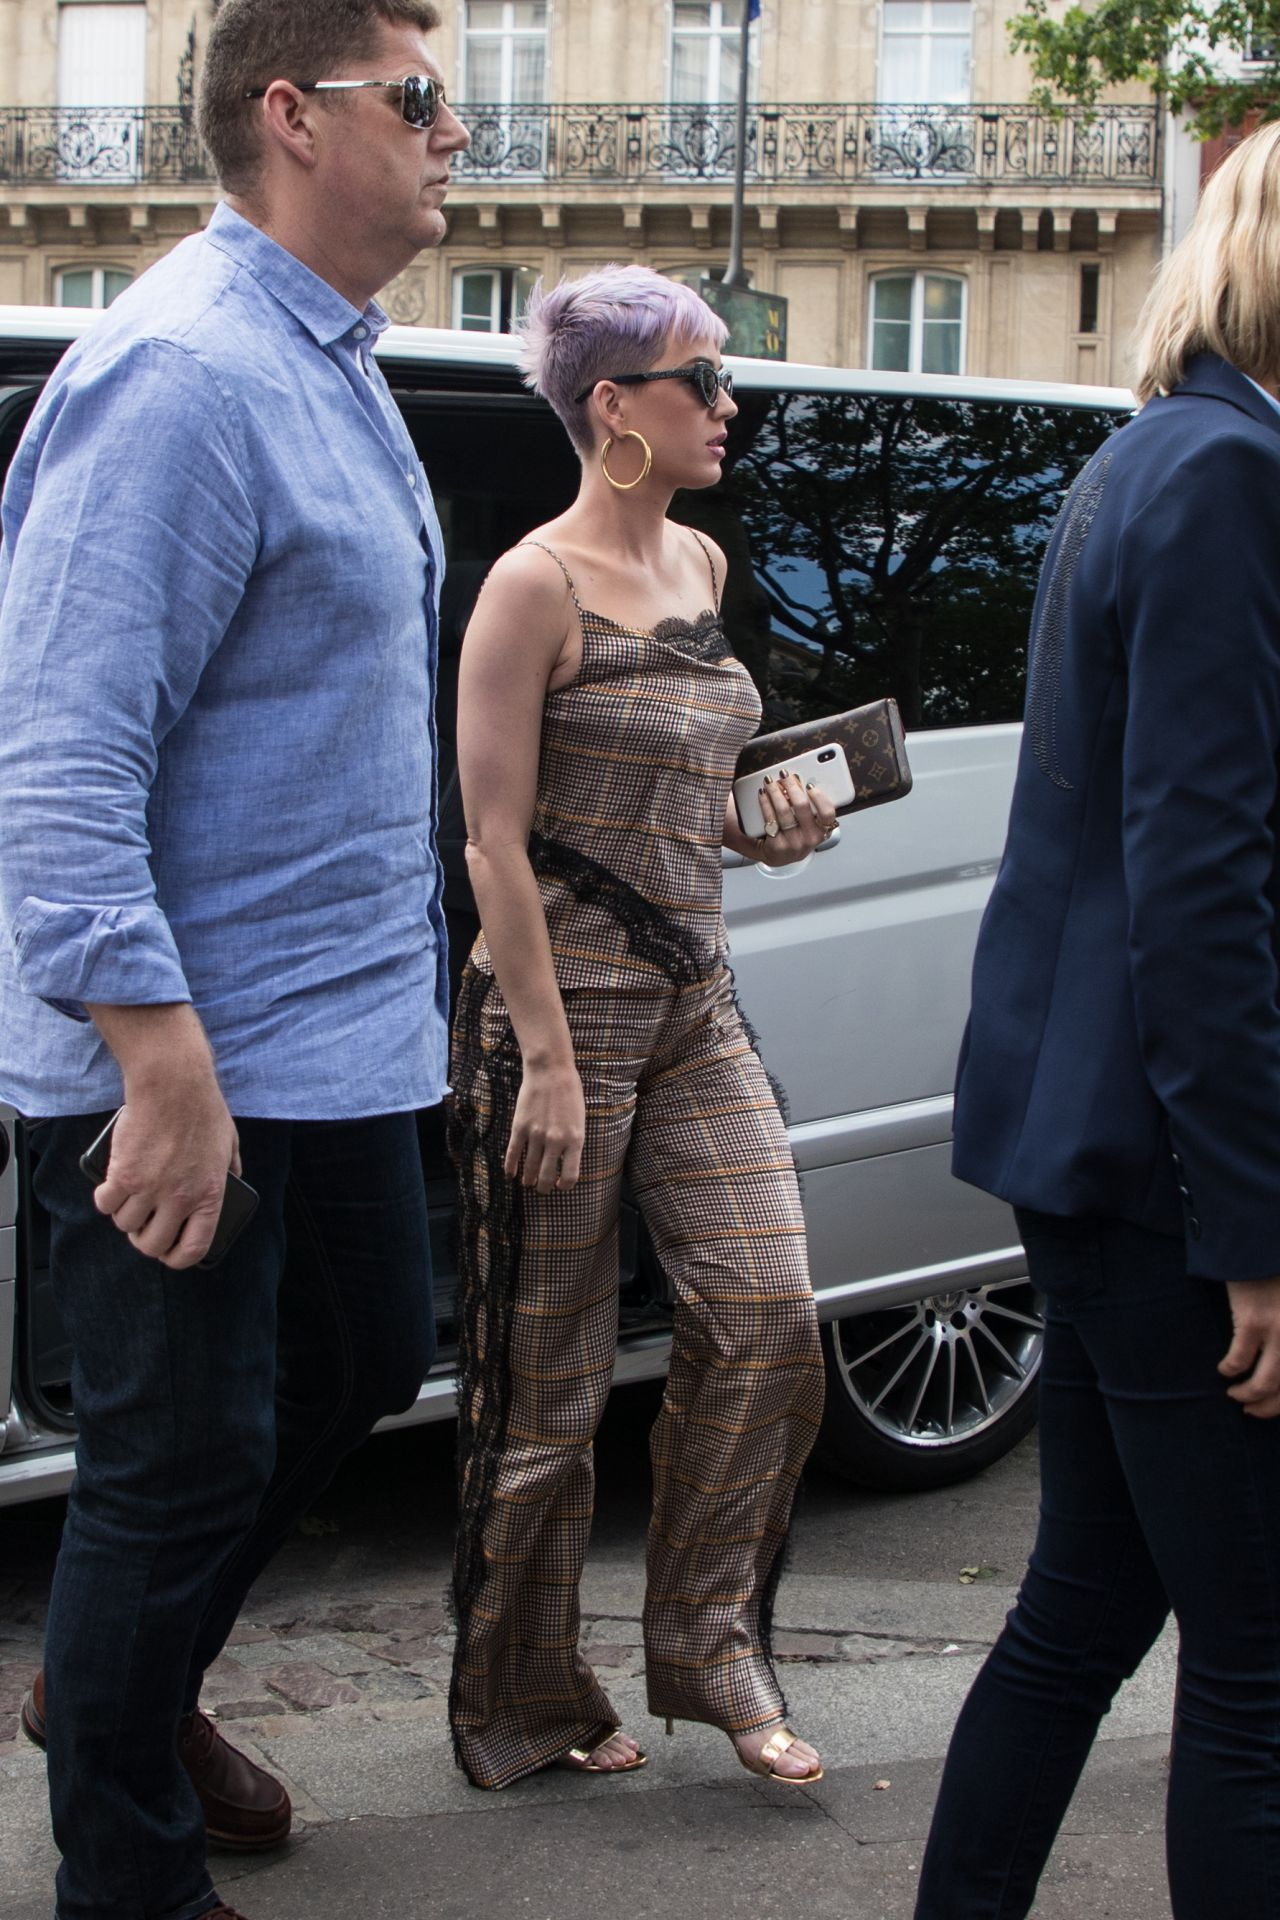 katy-perry-lunch-at-cafe-de-flore-in-paris-05-30-2018-4.jpg